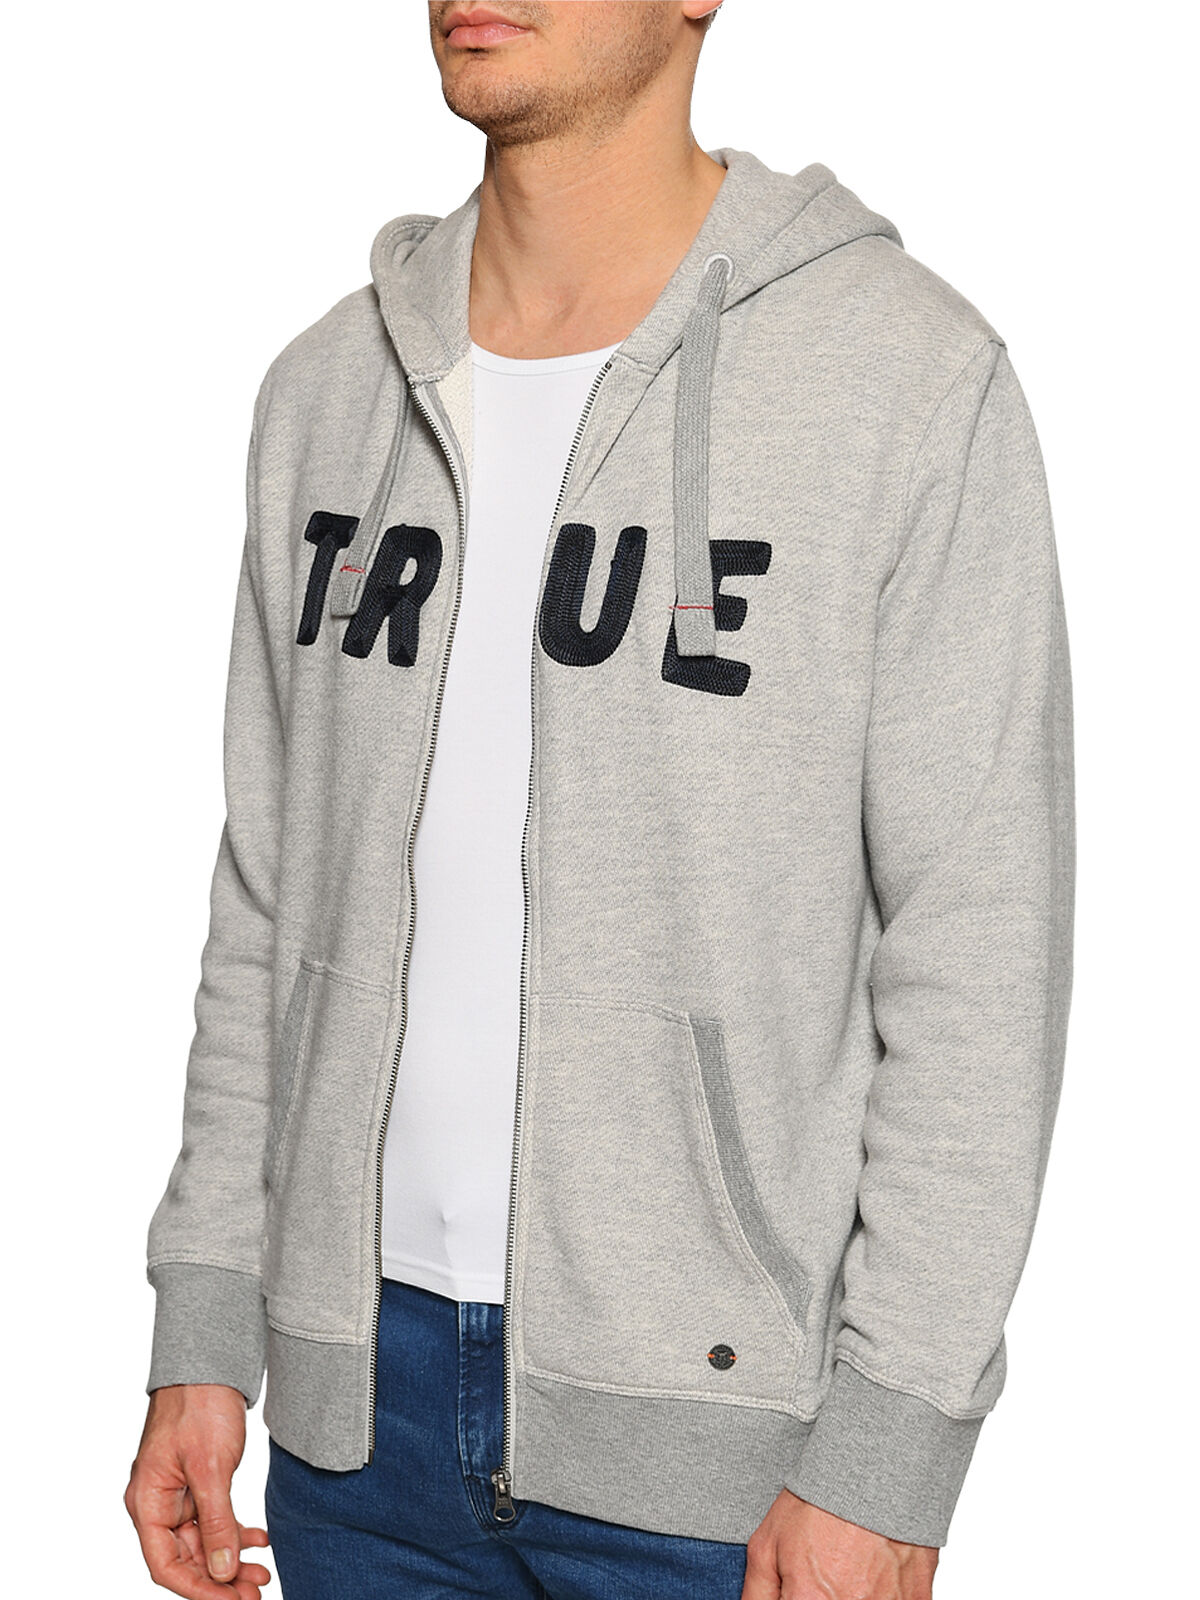 Hooded Sweatshirt Jacket